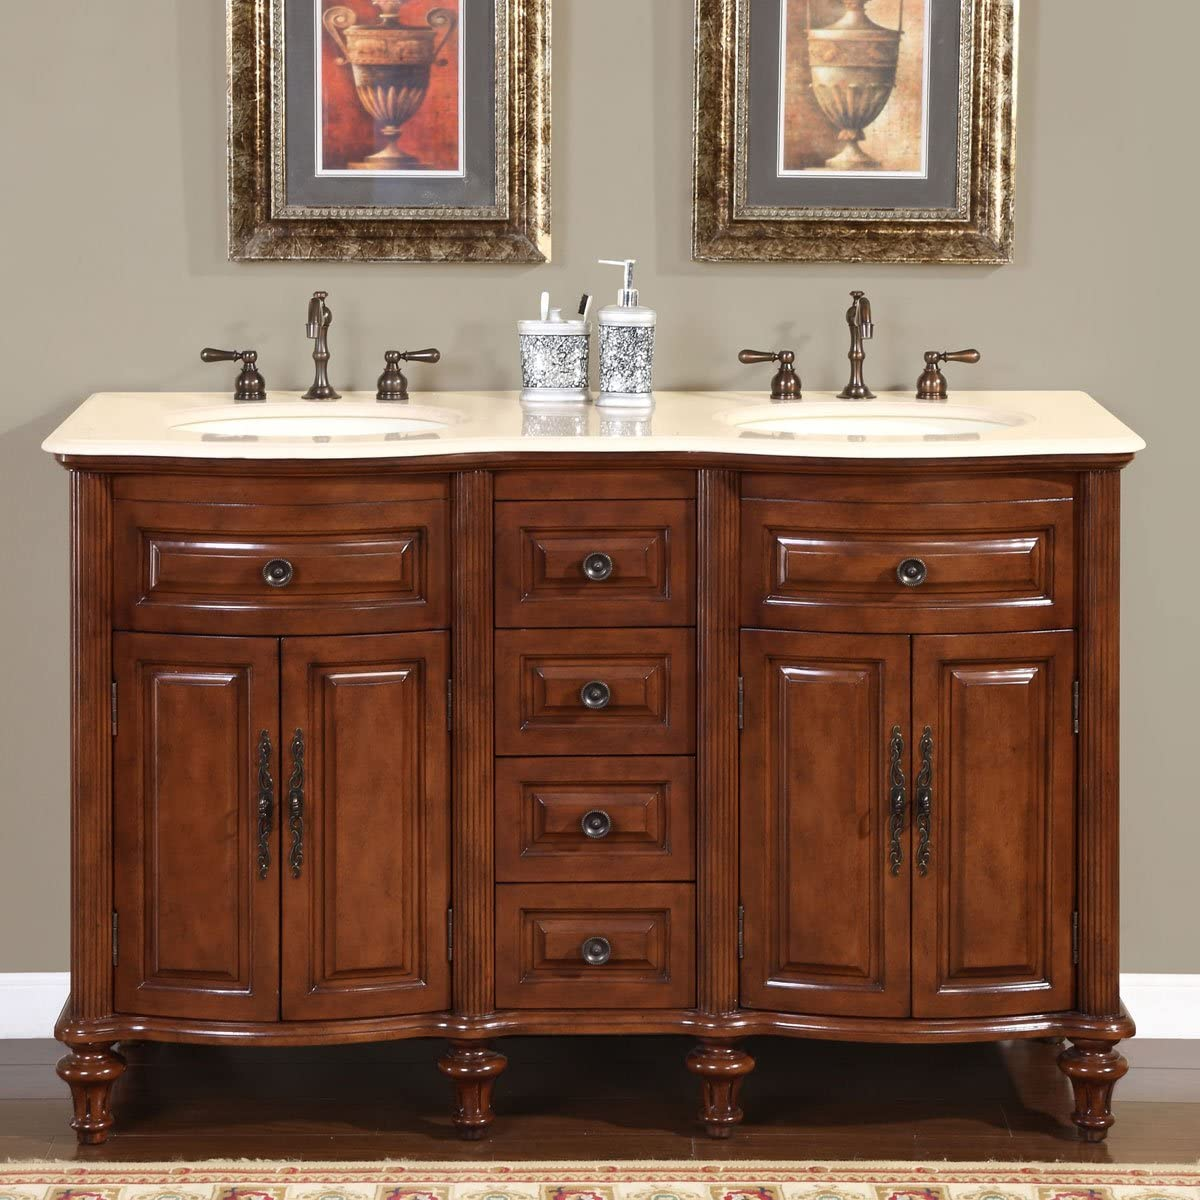 Silkroad Exclusive HYP-0719-CM-UIC-55 Marble Stone Top Double Sink Bathroom Vanity with Cabinet, 55 , Dark Wood